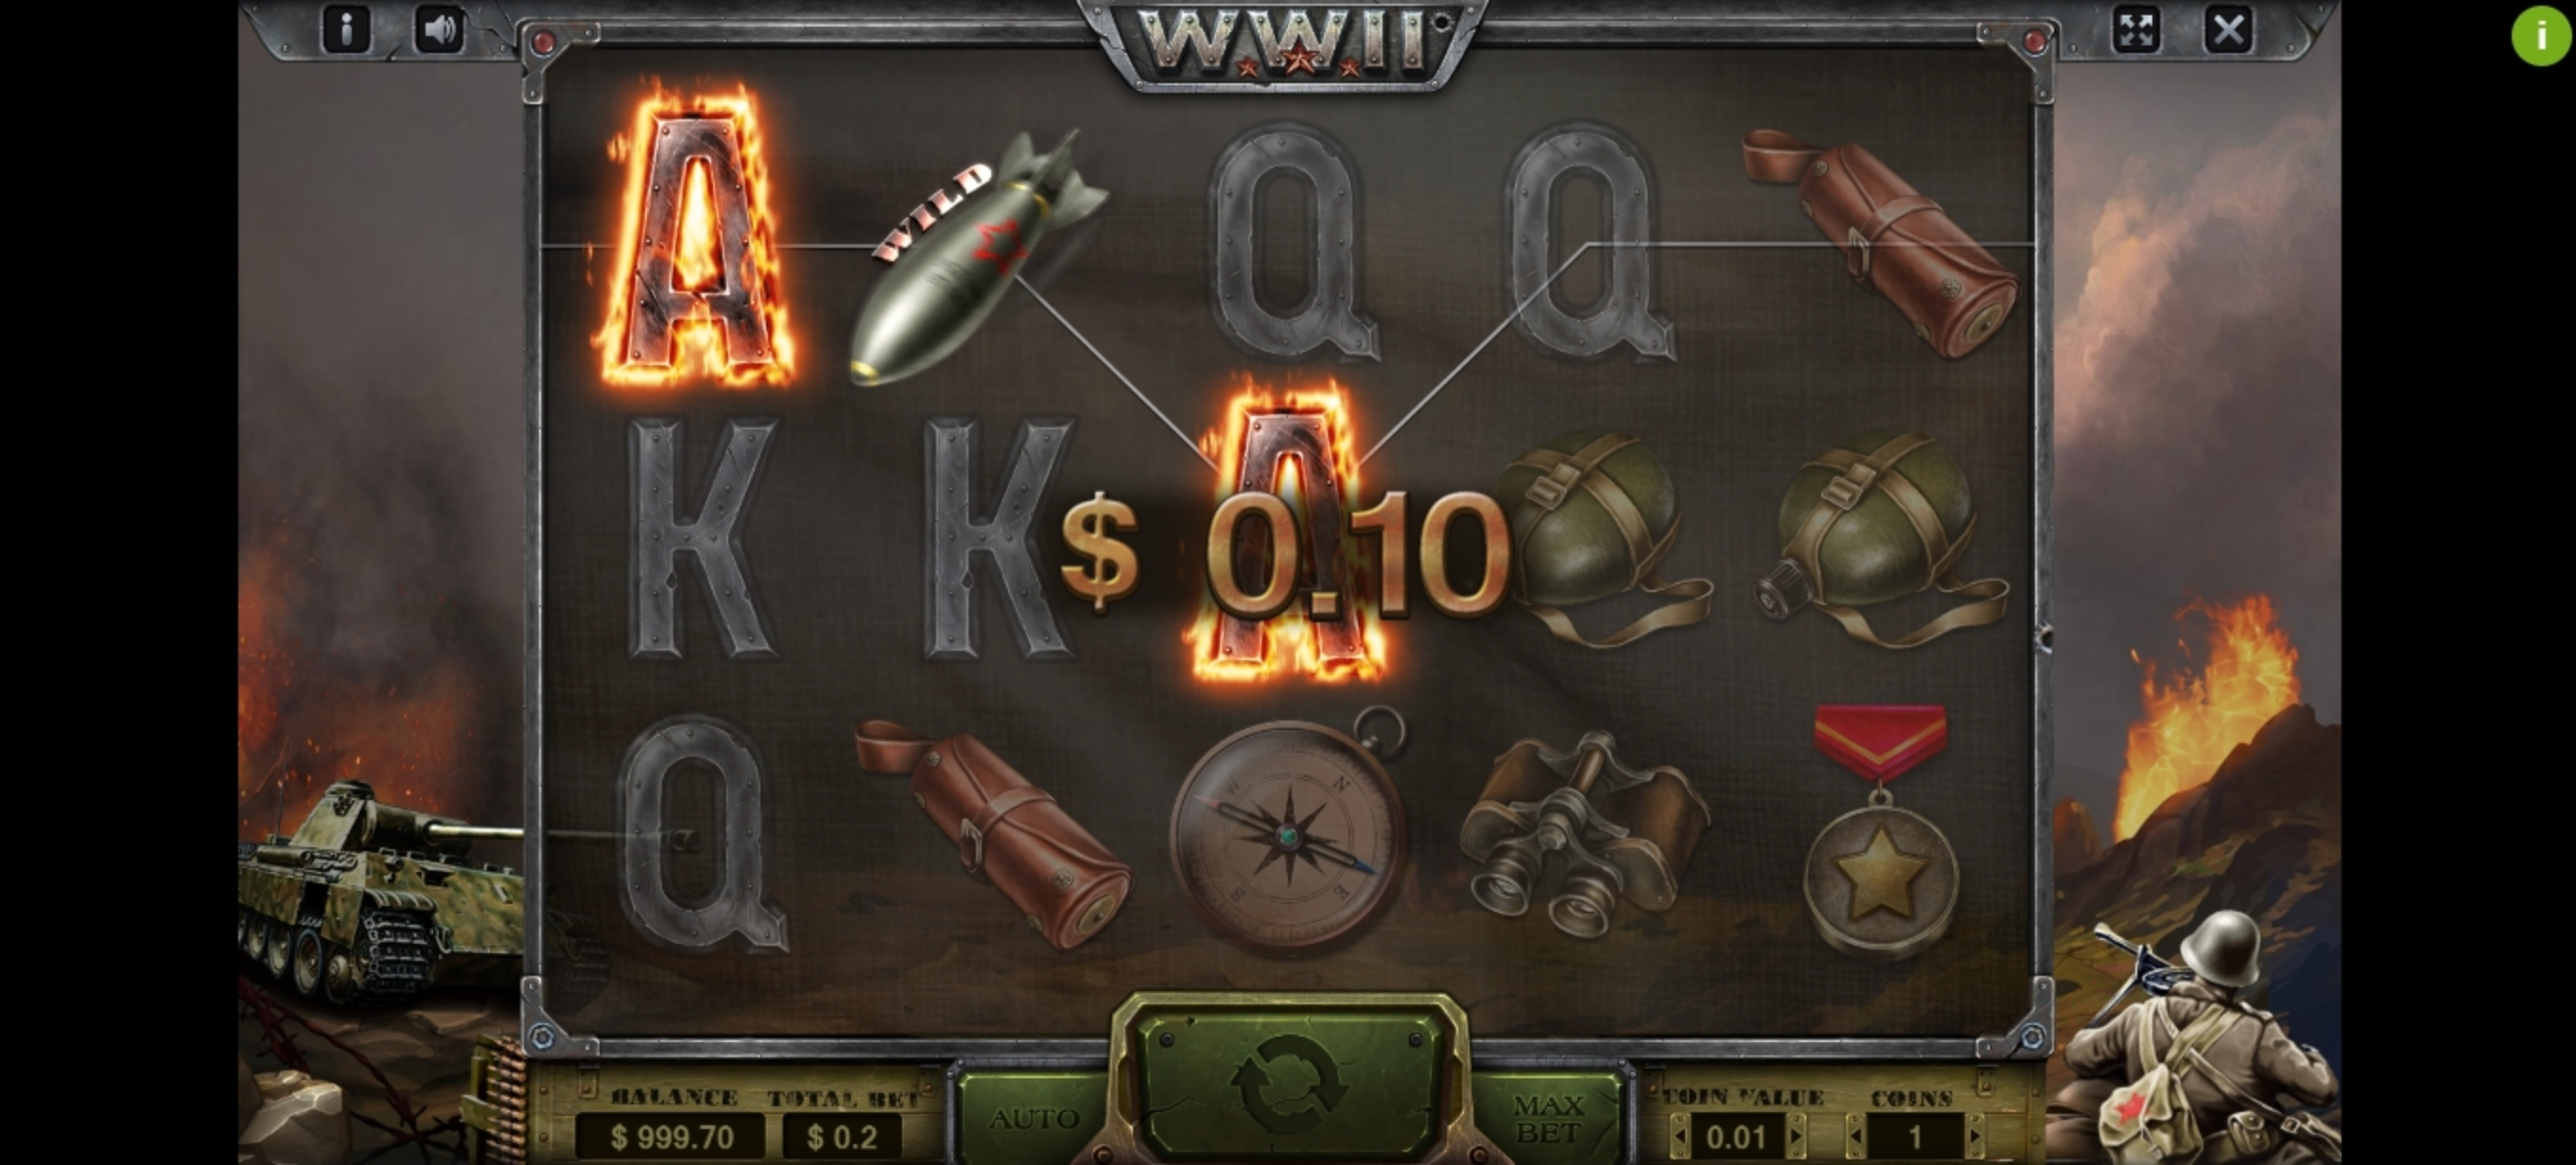 Win Money in WWII Free Slot Game by Charismatic